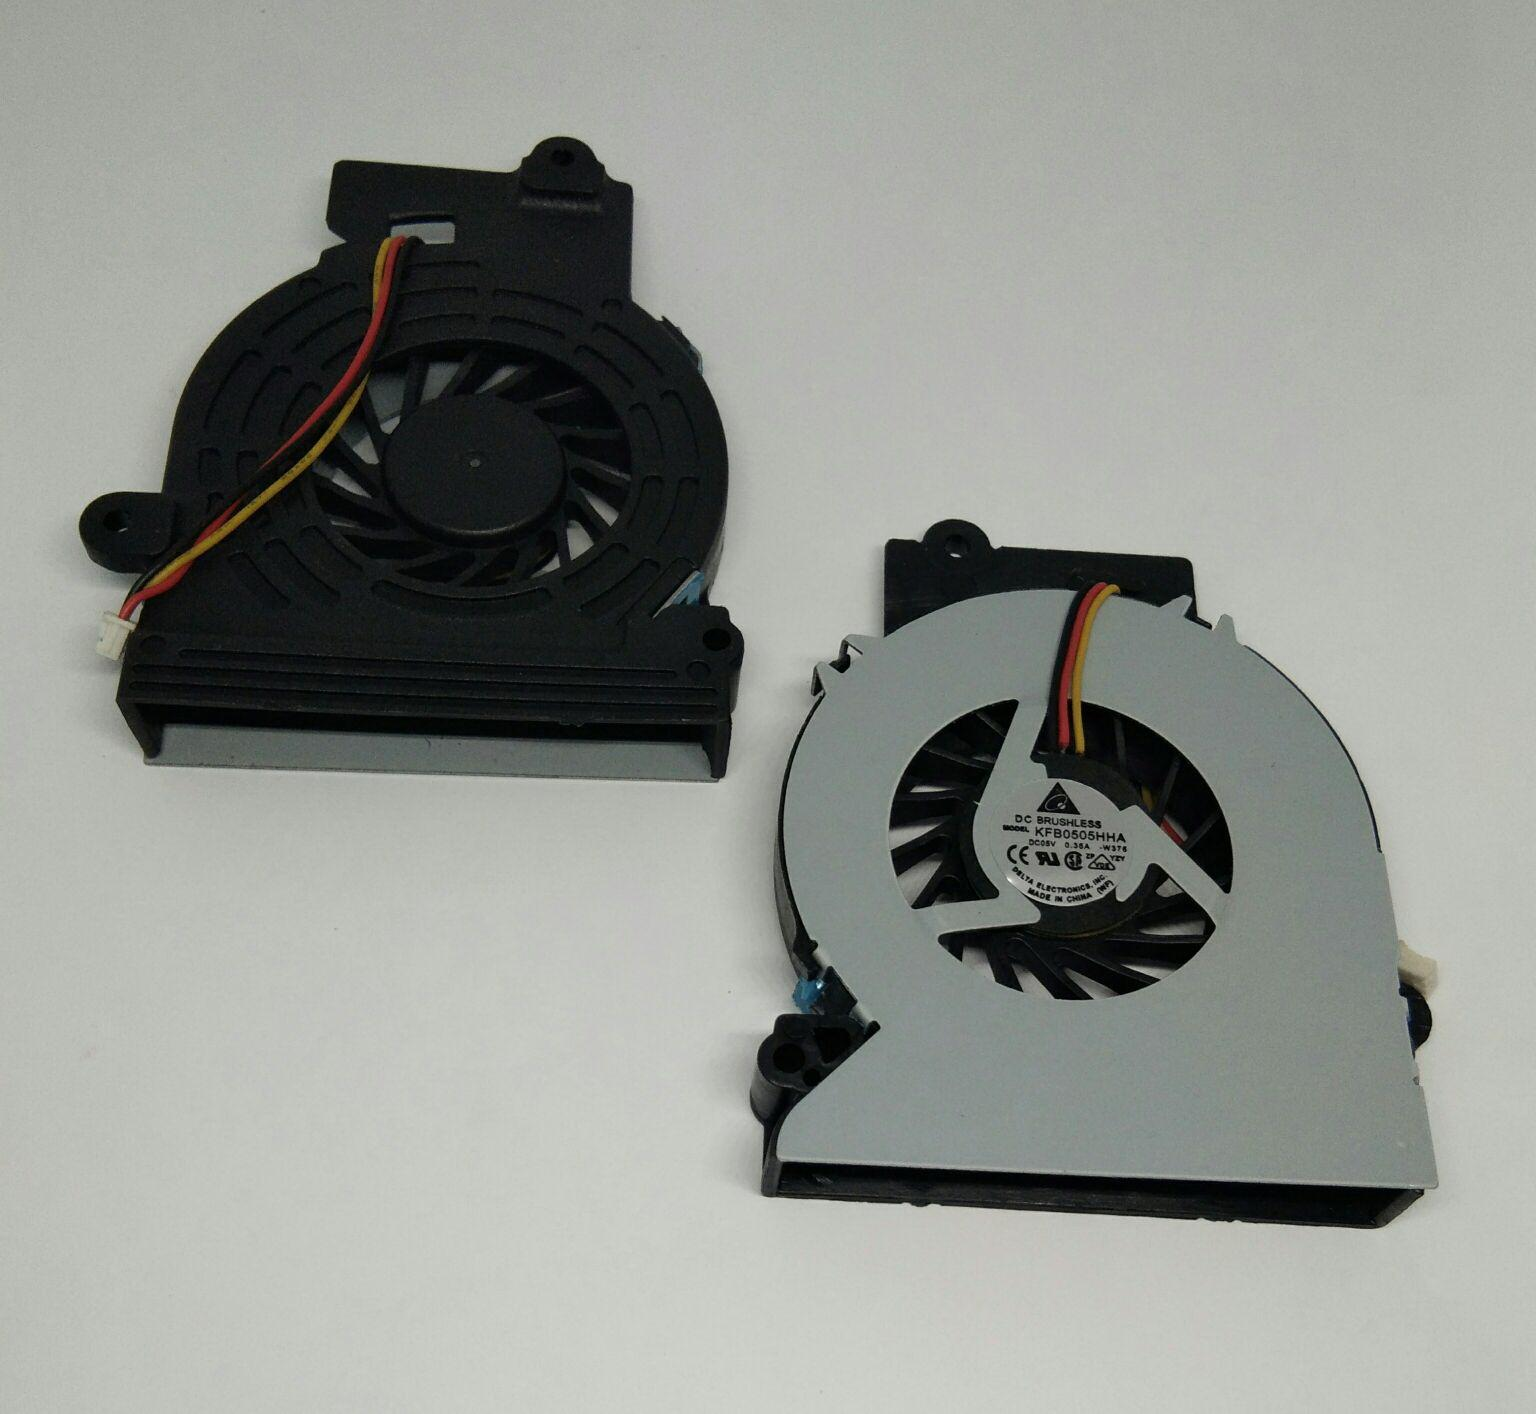 FUJITSU Laptop Fan Processor Siemens Amilo Pro V2035 V2030 V2055 3Pin